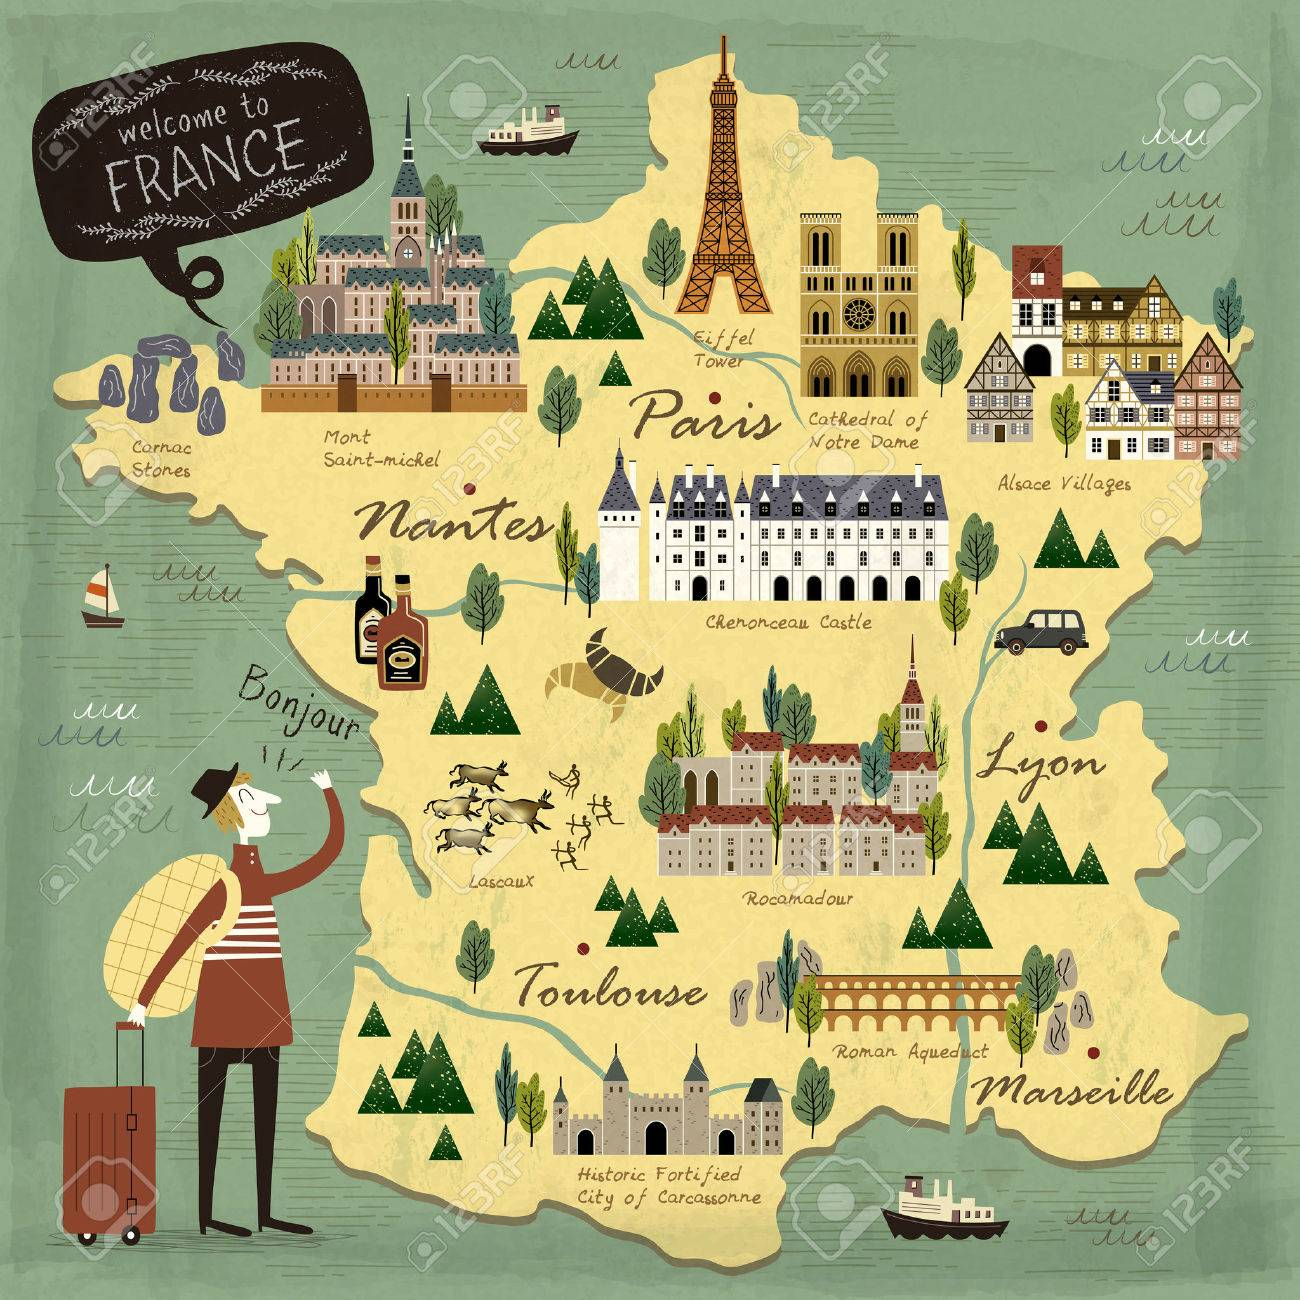 Map Of France Tourist Attractions.France Travel Concept Illustration Map With Attractions